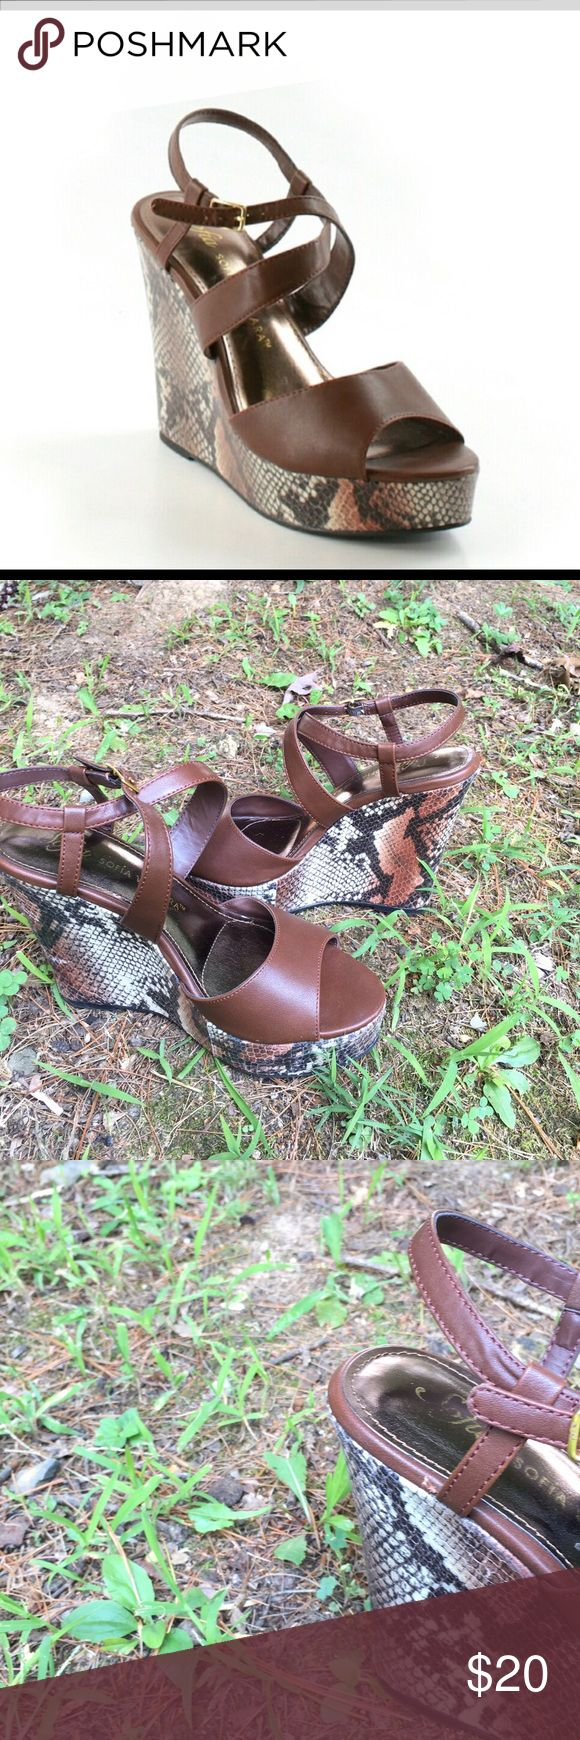 Sofia Vergara Wedges Platform Strappy brown wedges.  Worn once, size 7.  4 inch heel height.  In great condition except one small place seen in picture three.  Make an offer! Sofia Vergara Shoes Platforms